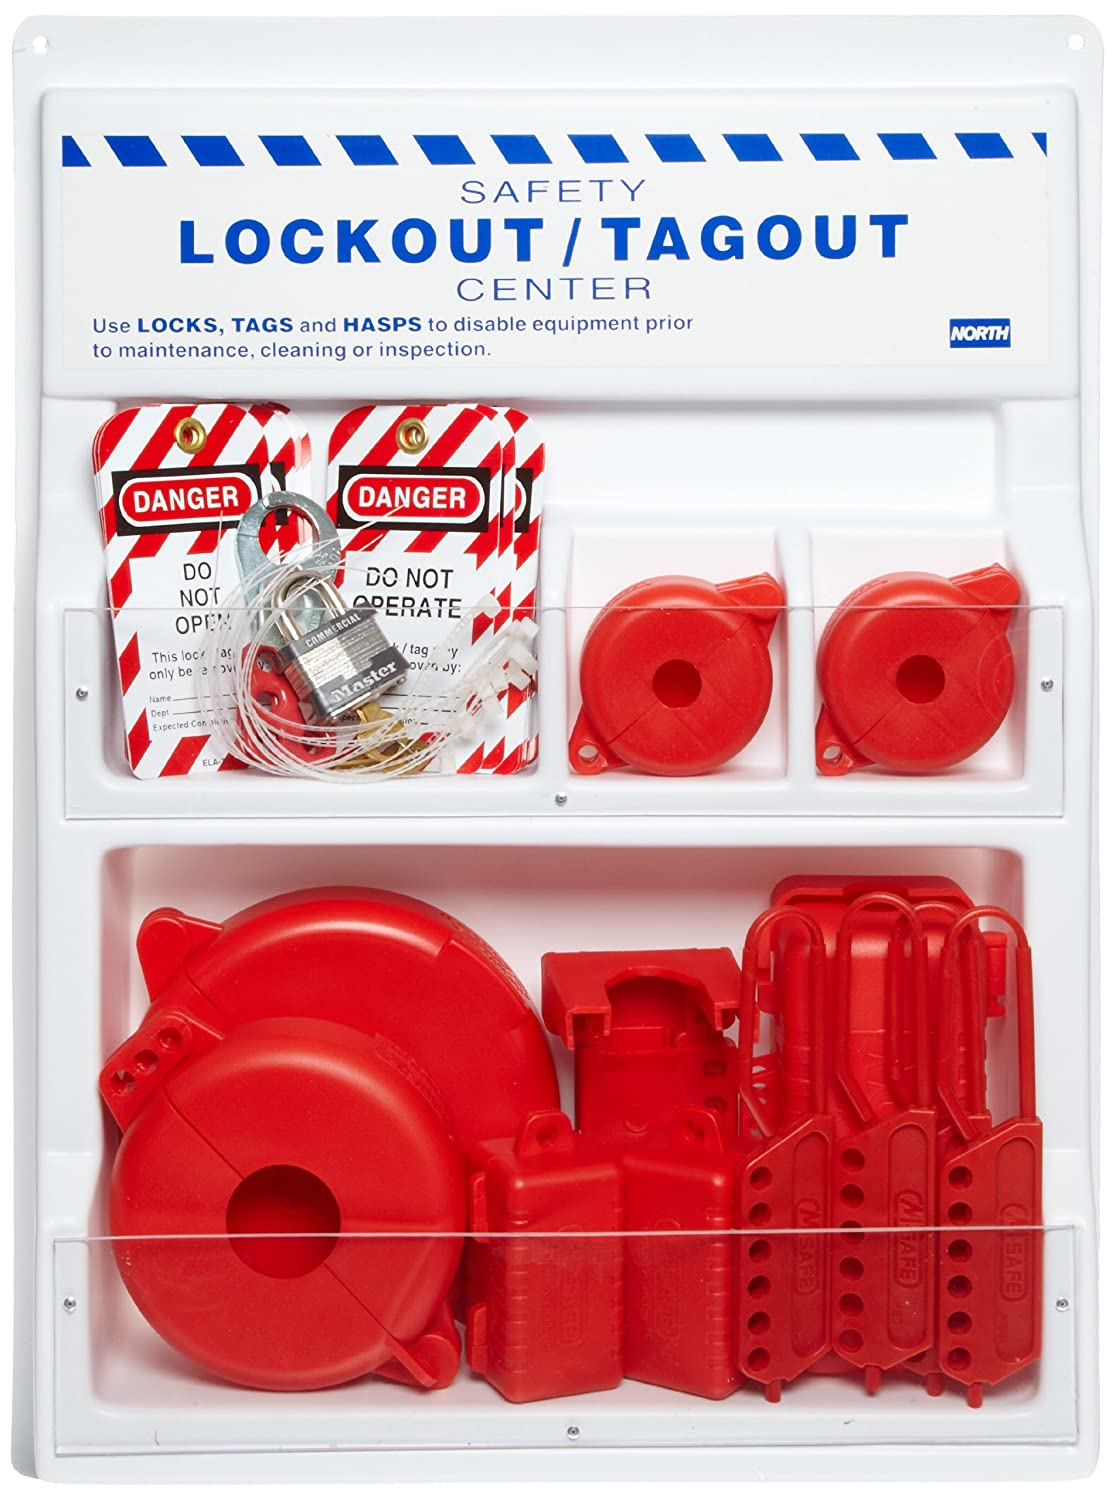 North Safety Panel Lockout Station, 18 Length, 24 Width maritime safety